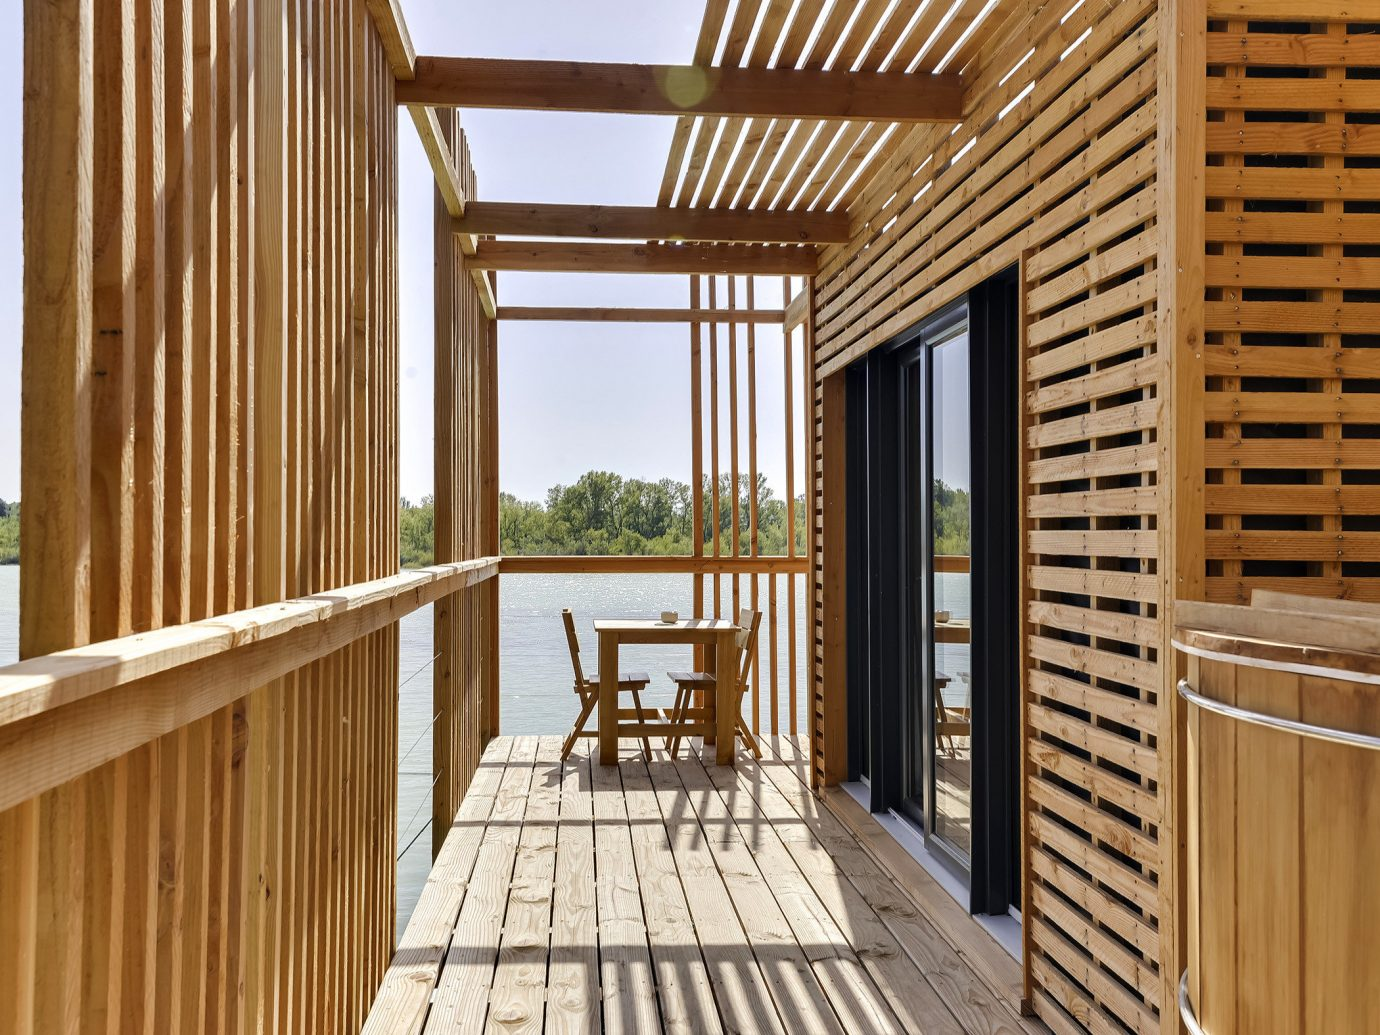 Hotels News Offbeat wood real estate house Deck window estate Balcony outdoor structure interior design facade